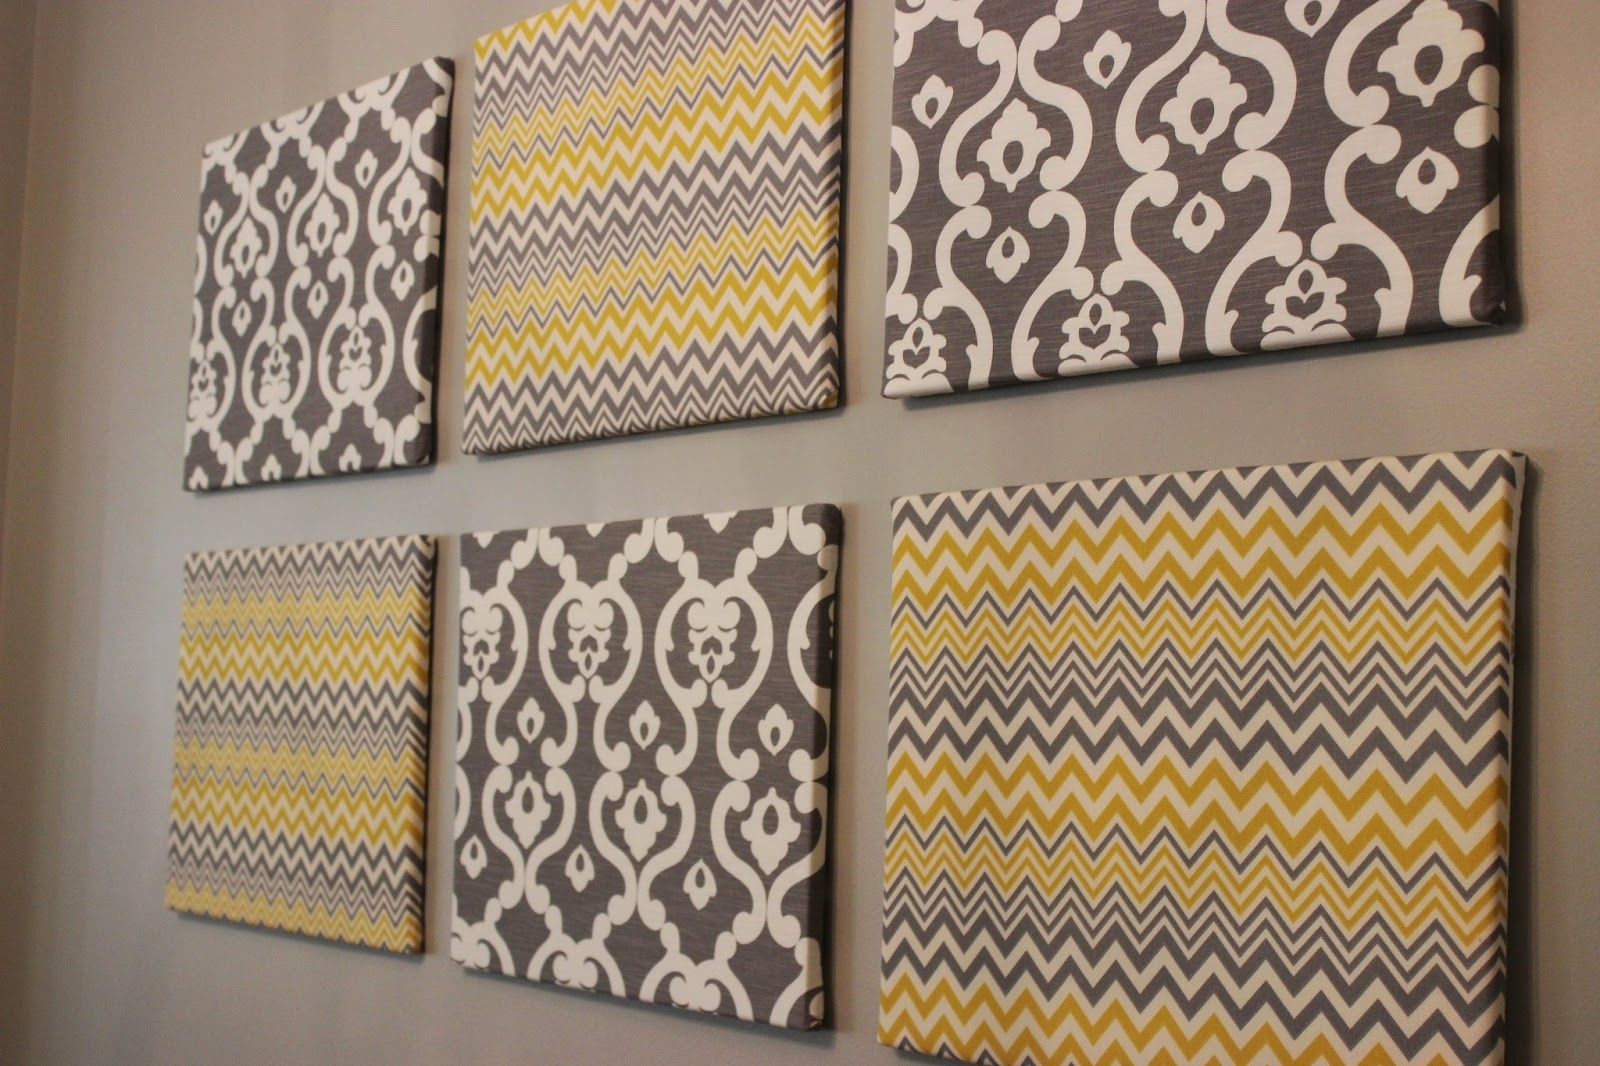 Cheap Price Of Easy Diy Art As Wall Decor Made Of Paper Material For Latest Fabric Square Wall Art (Gallery 4 of 15)